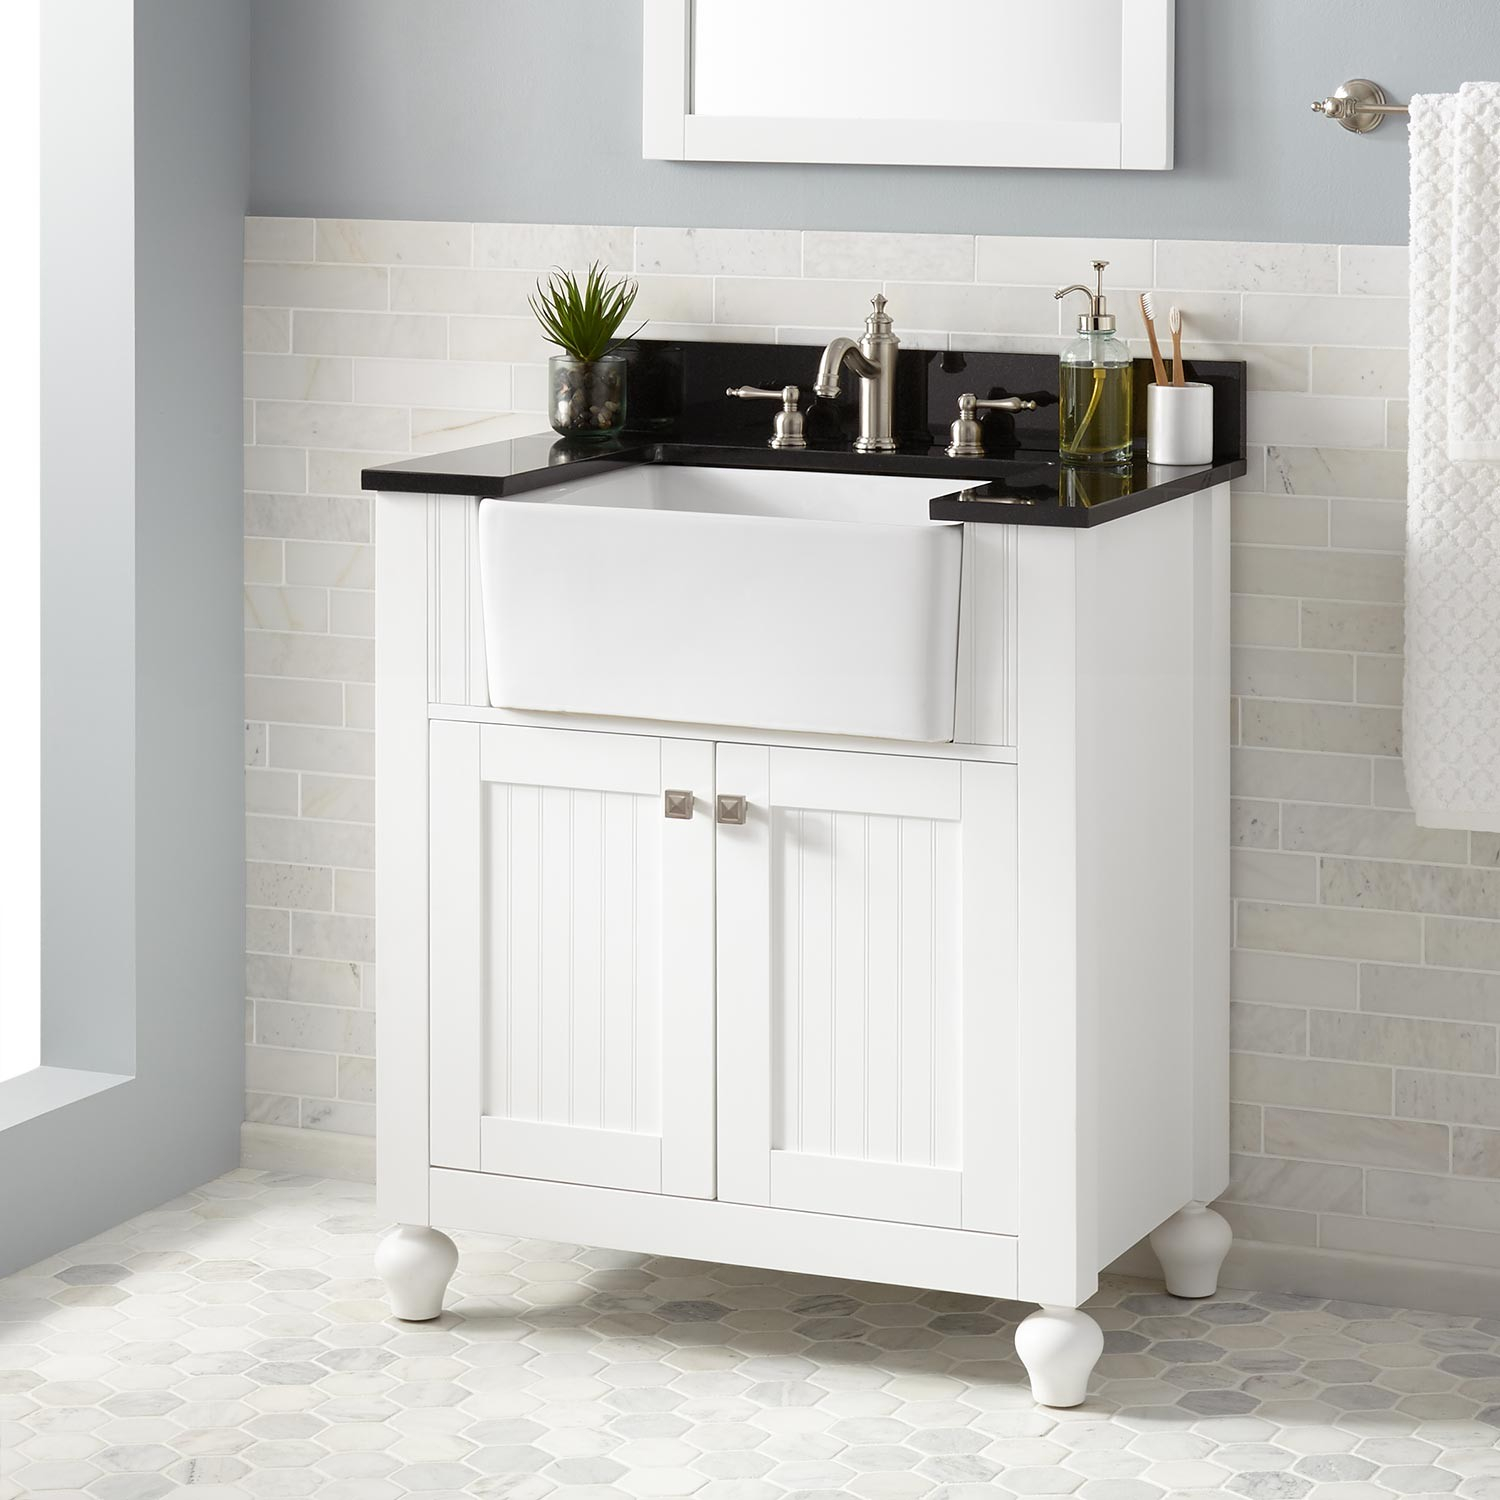 "Amazing 30"" Nellie Farmhouse Sink Vanity - White - Bathroom pertaining to Review Bathroom Sink And Vanity"